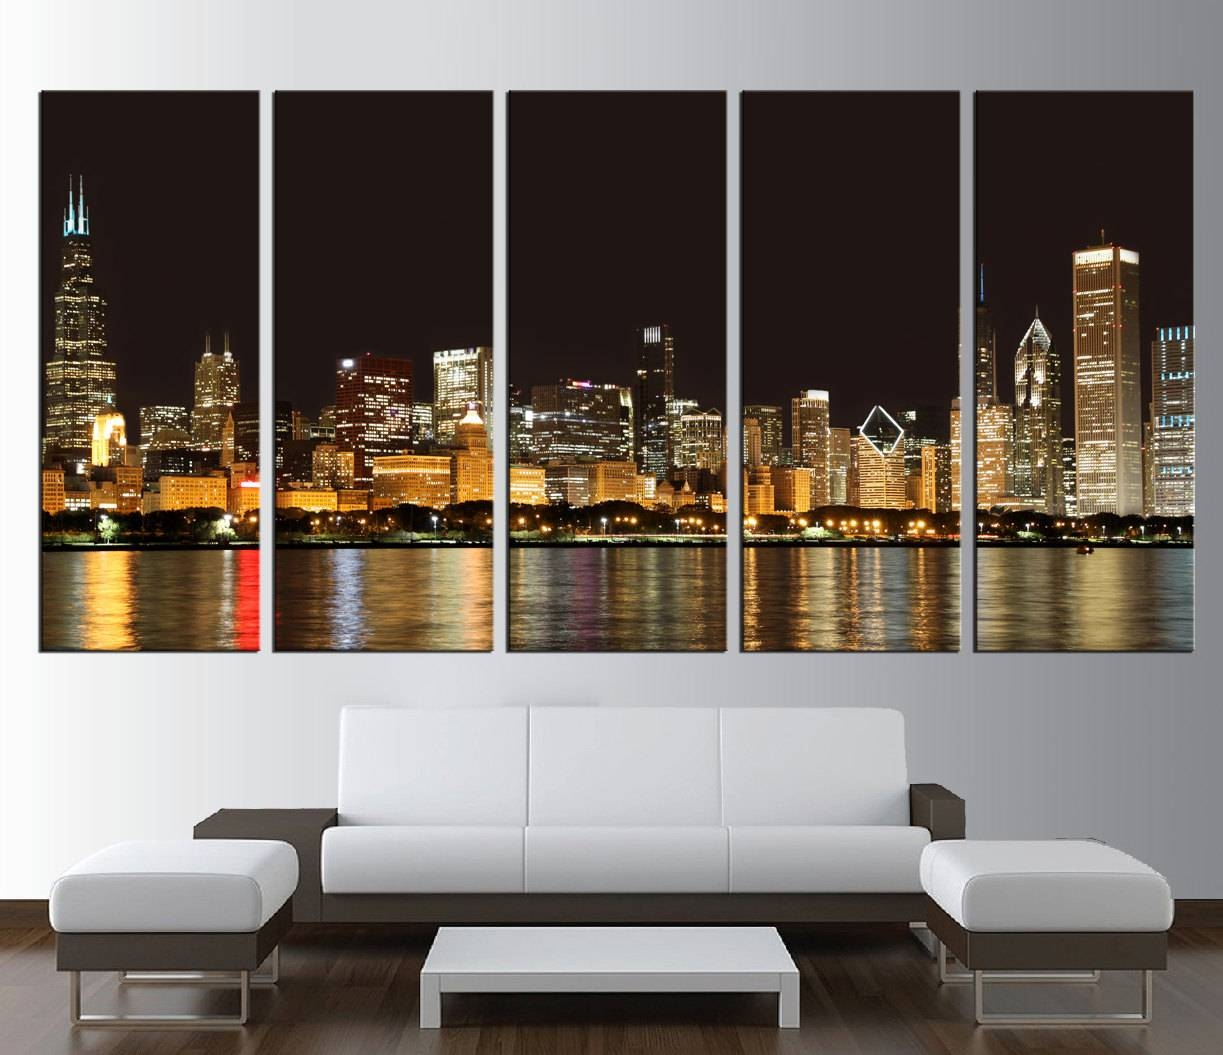 Wall Art Design: Extra Large Wall Art Rectangle Black Gold Intended For 2017 Huge Wall Art (View 18 of 20)